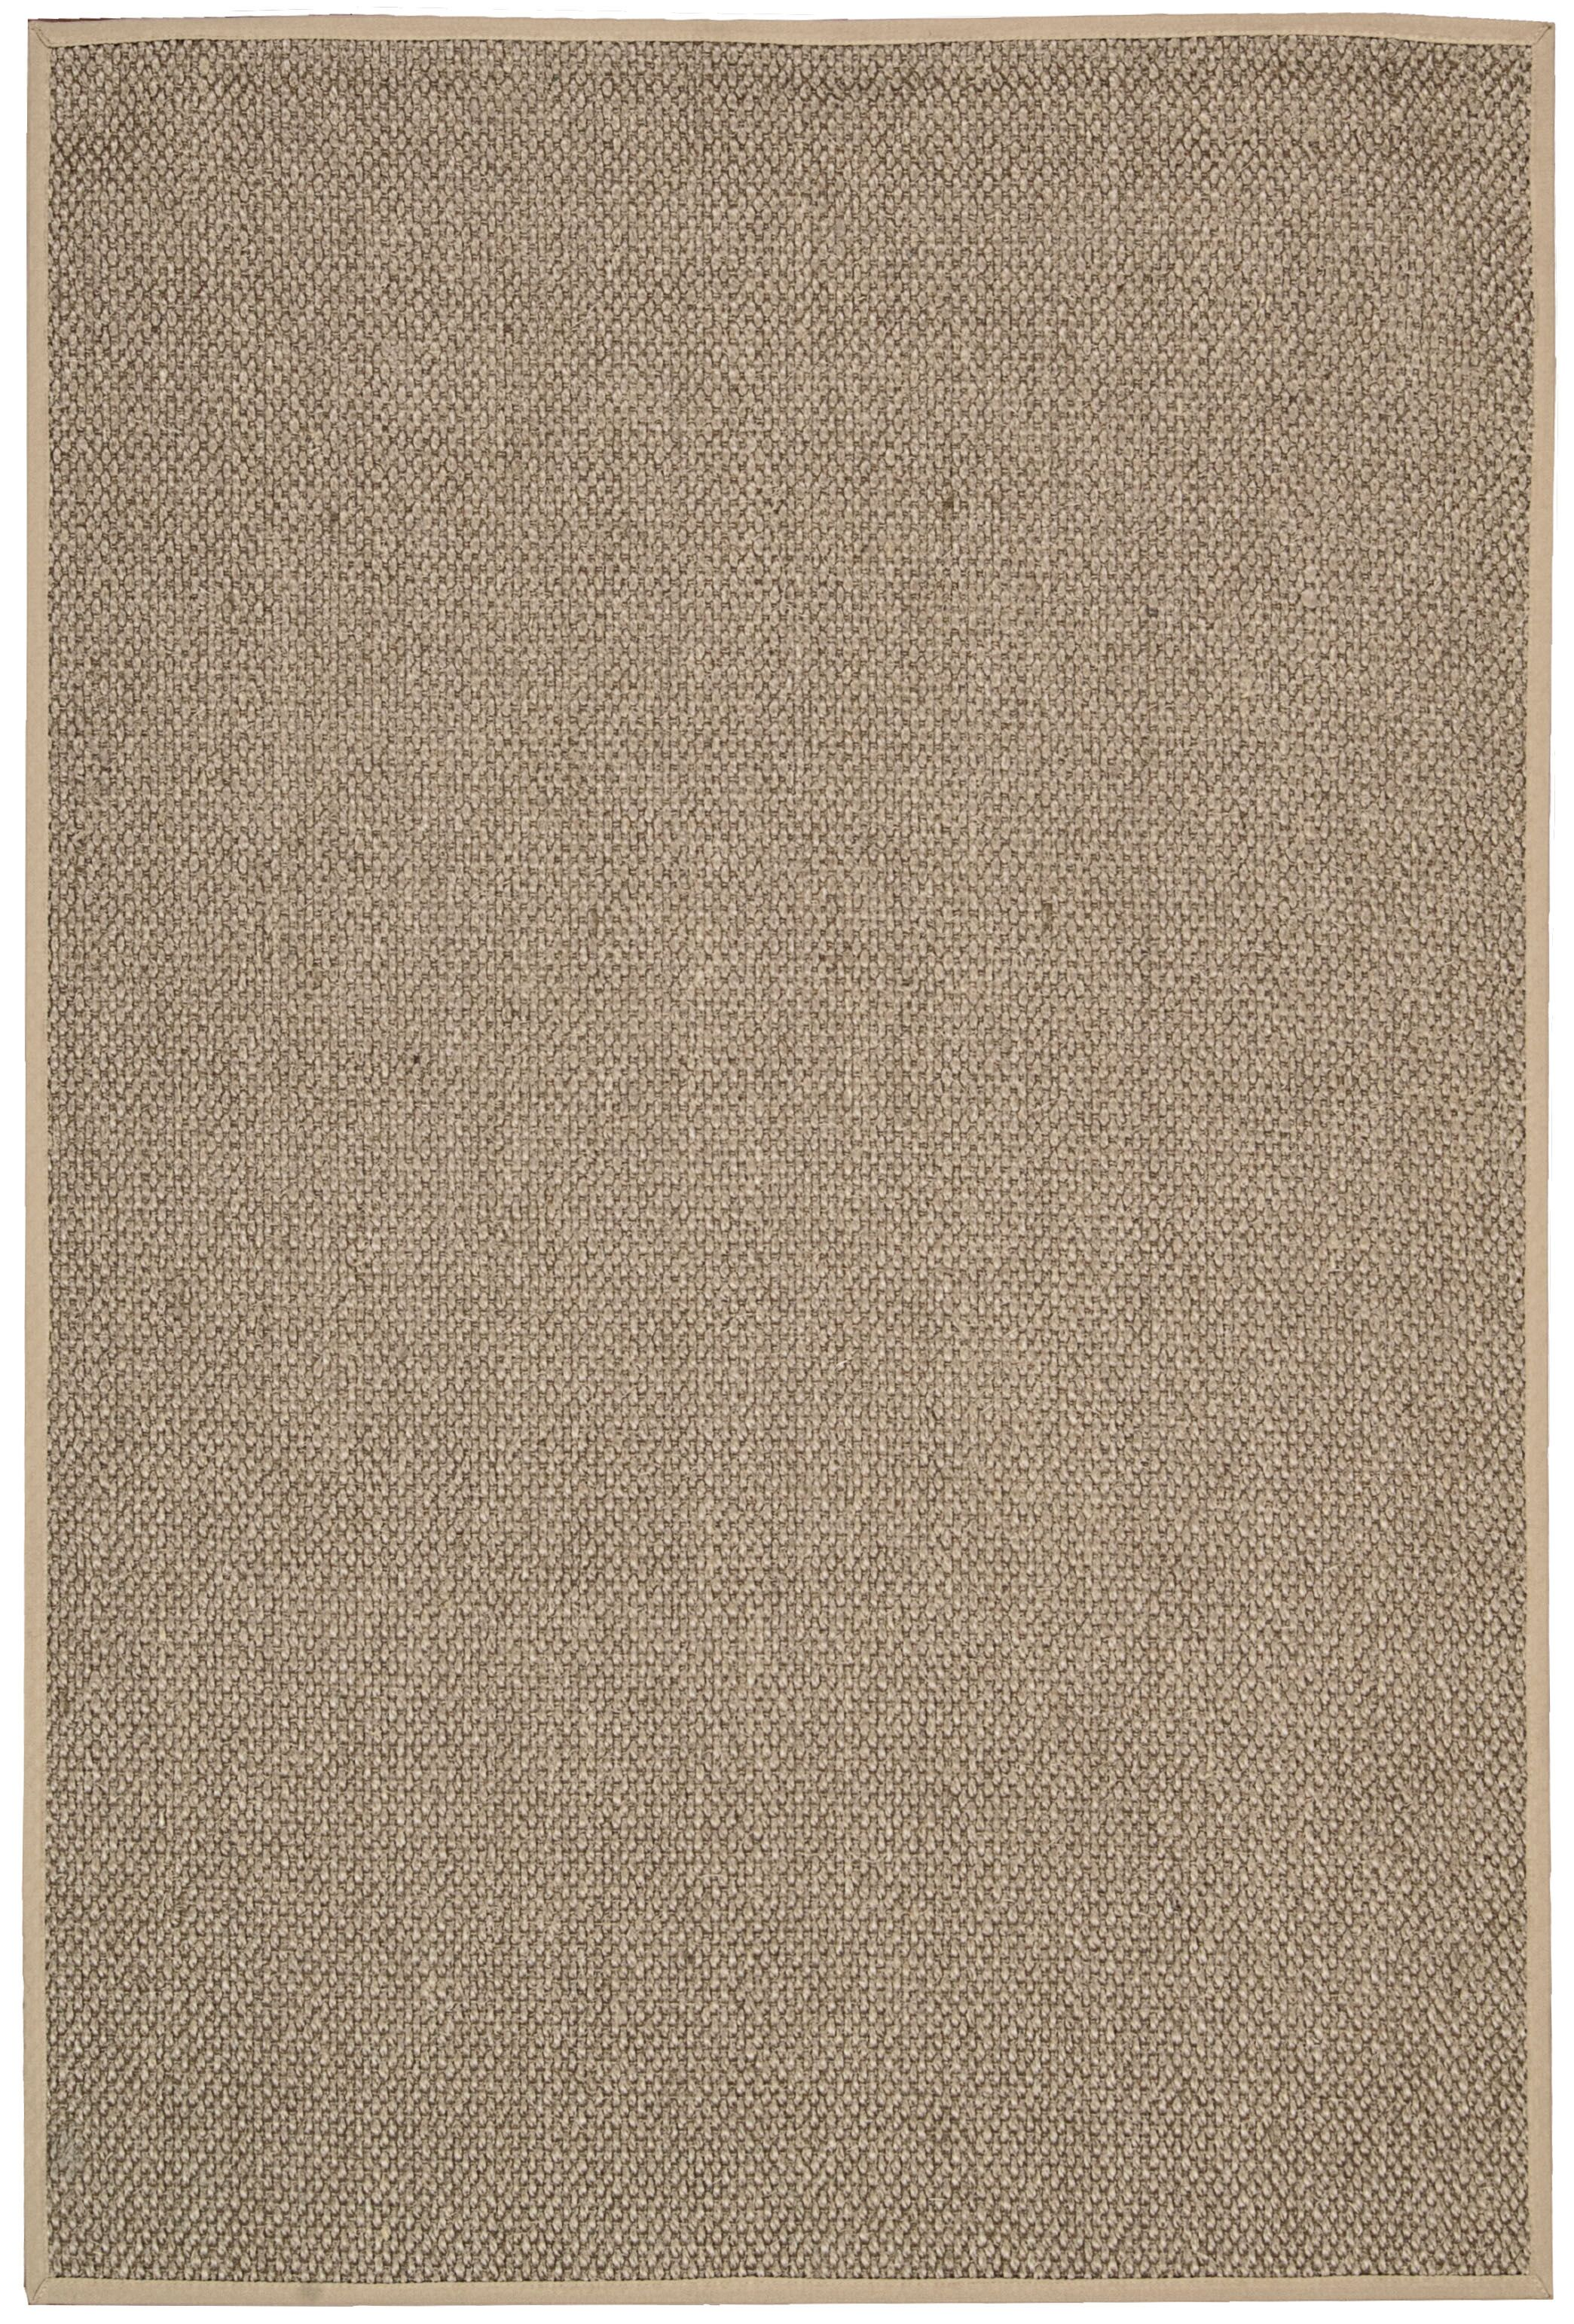 Kerala Java Taupe Area Rug Rug Size: Rectangle 5' x 7'6